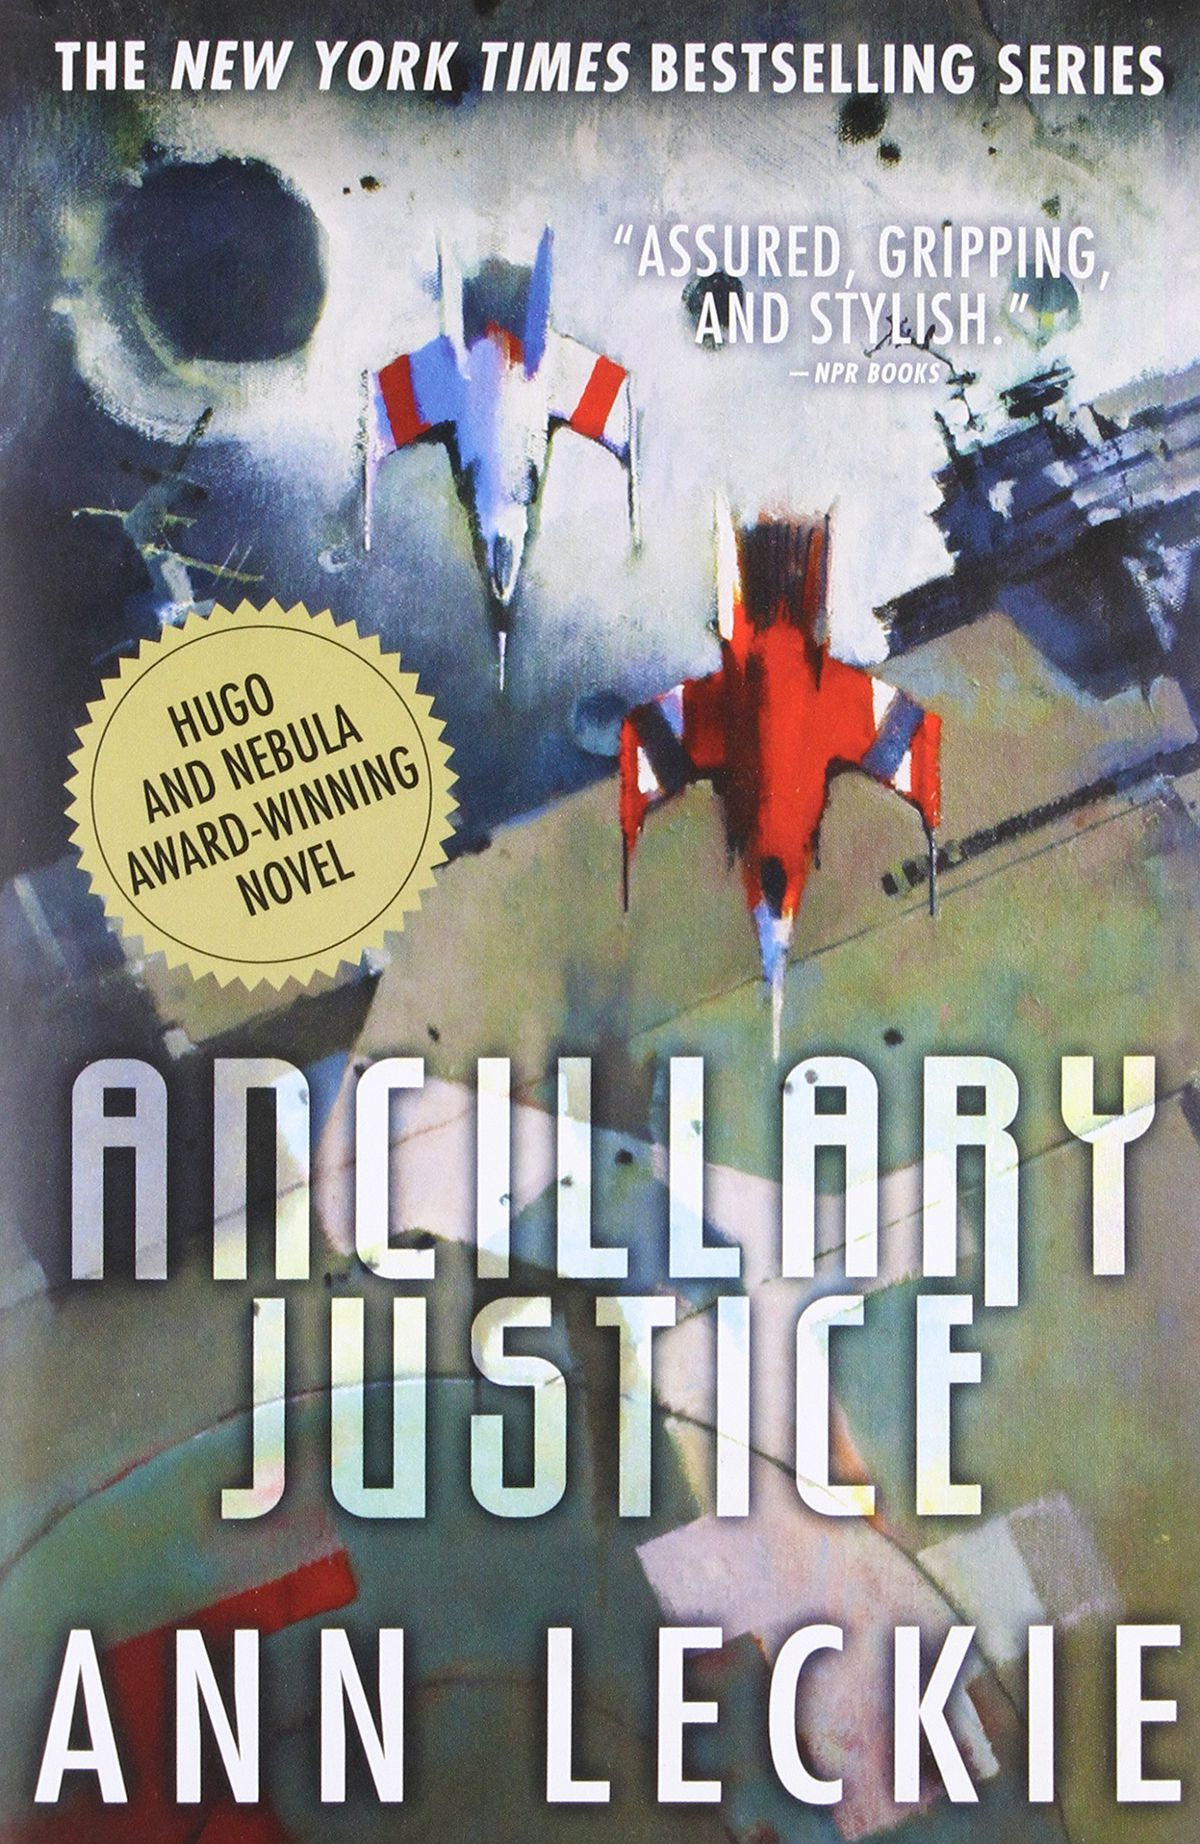 Ancillary Justice by Ann Leckie cover